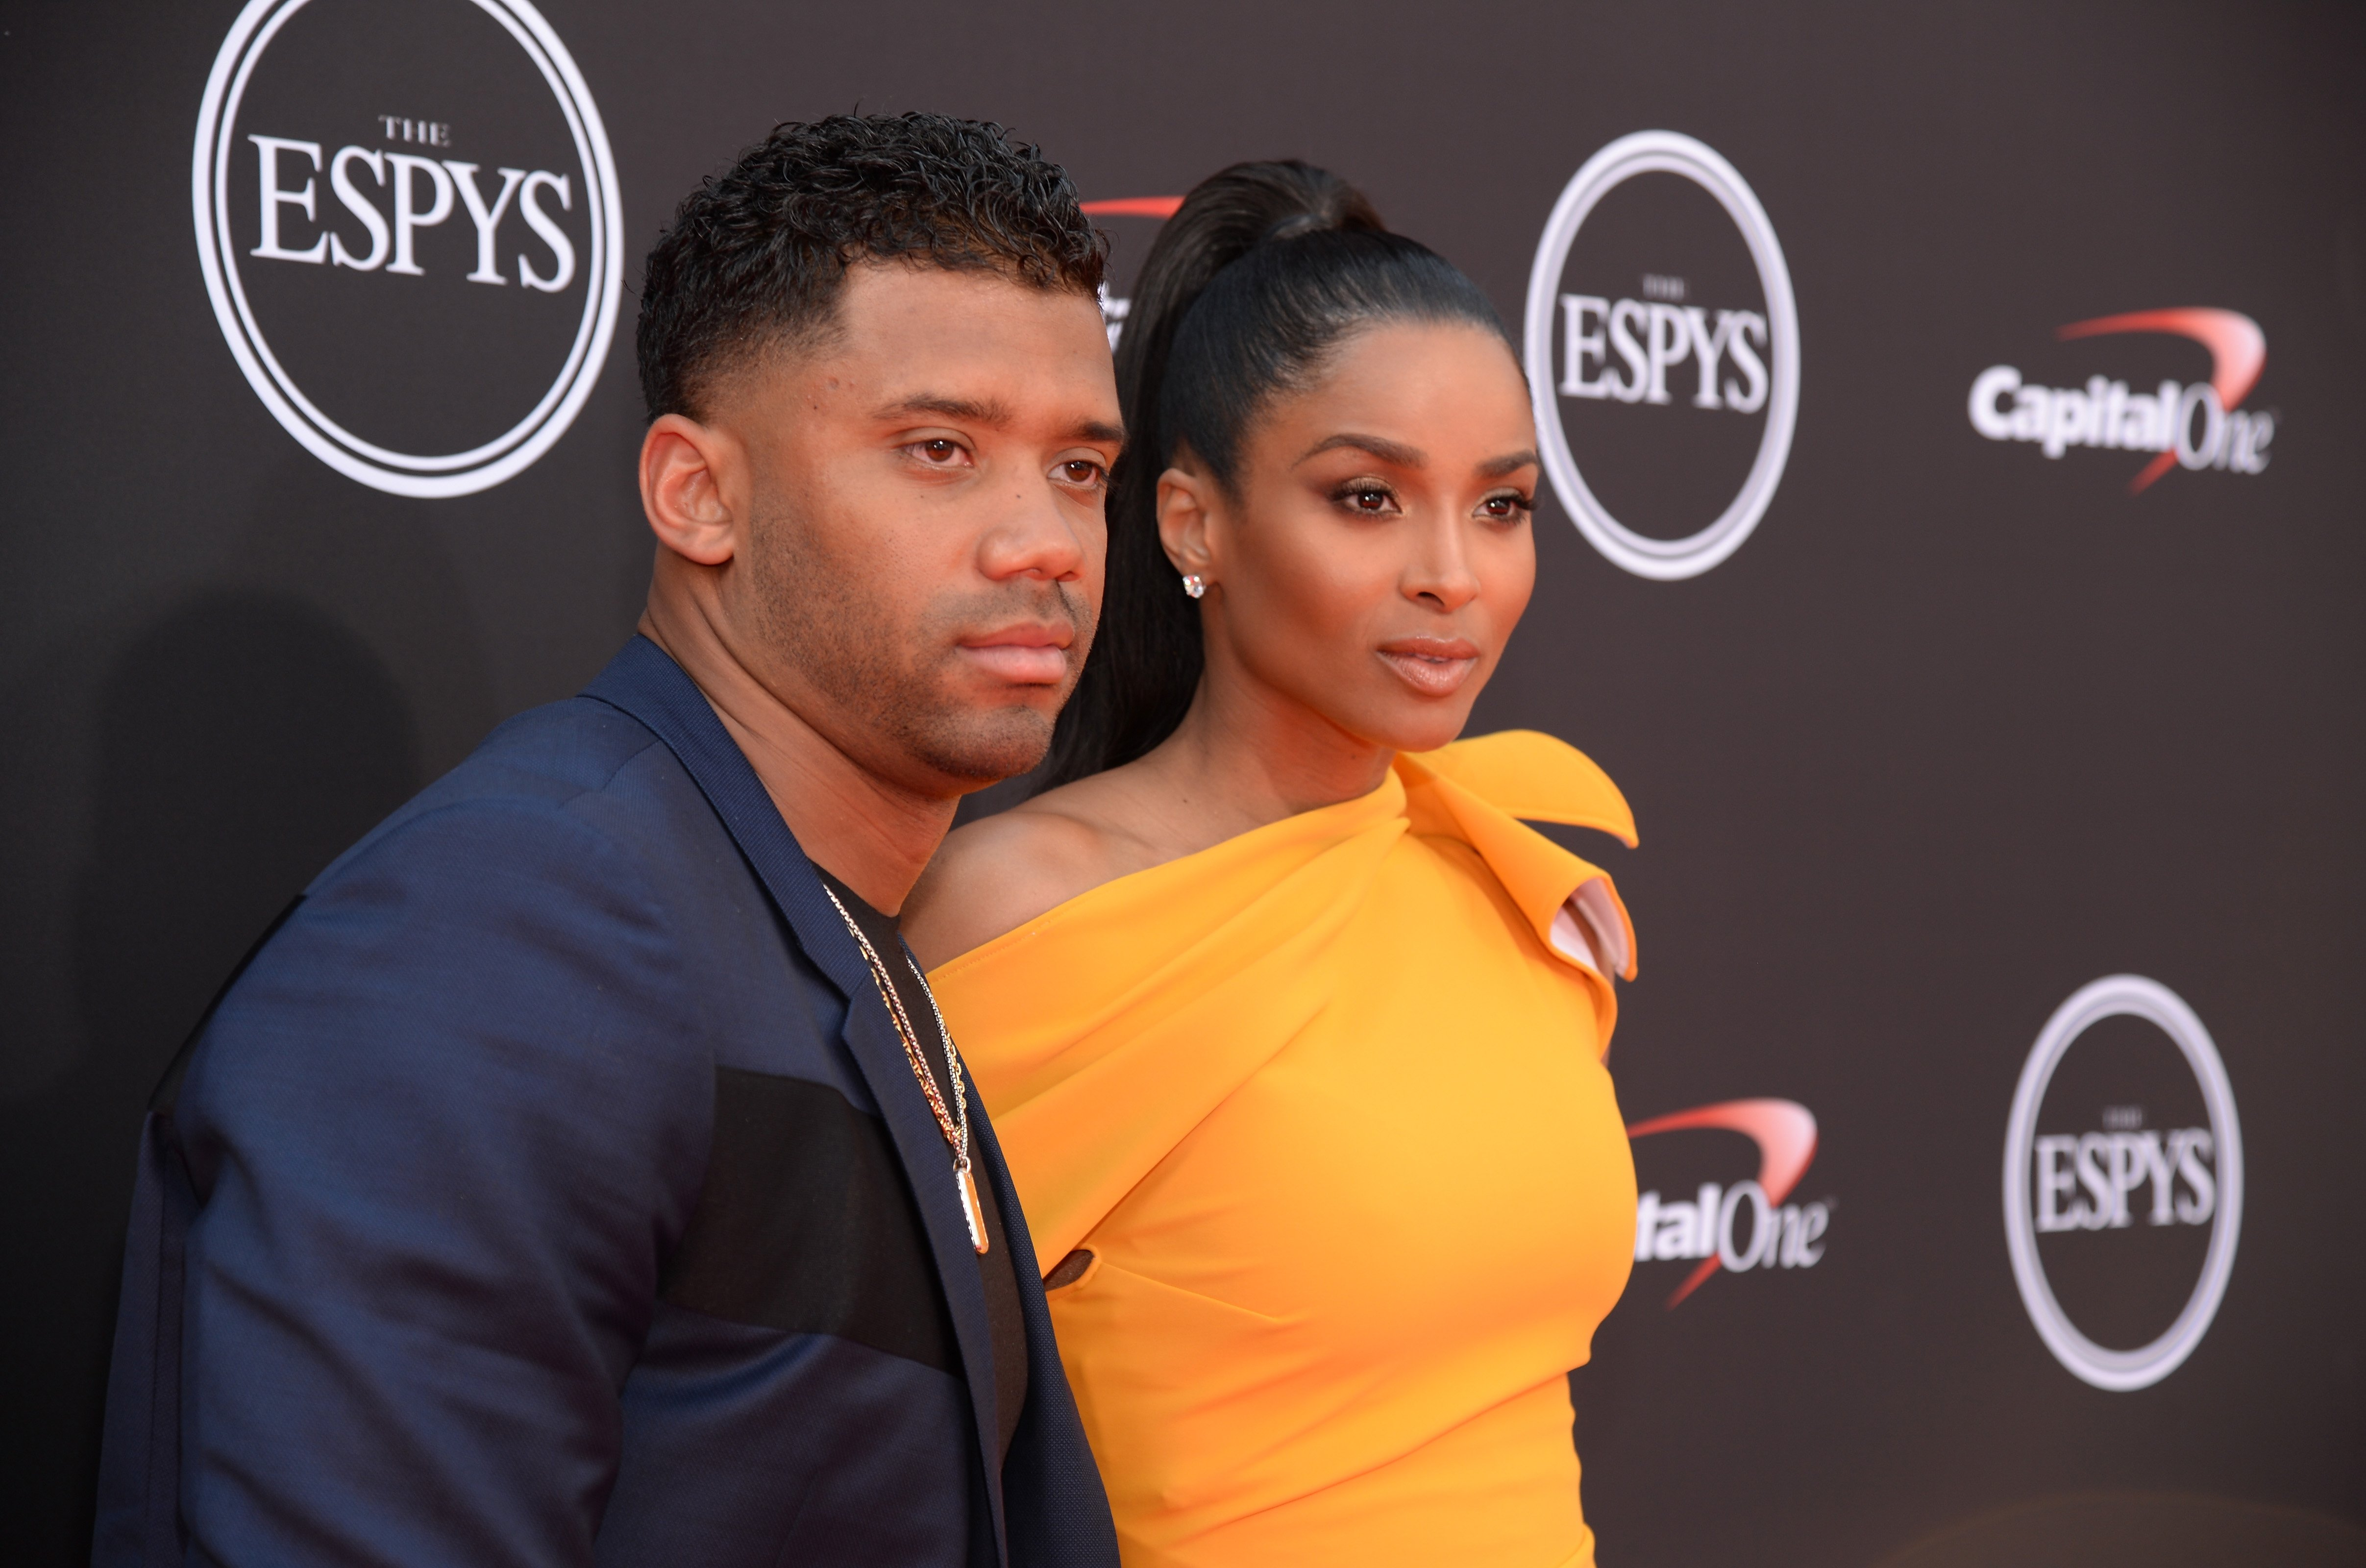 Ciara & Russell Wilson at The 2018 ESPYS in Los Angeles, California on July 18, 2018. | Photo: Getty Images